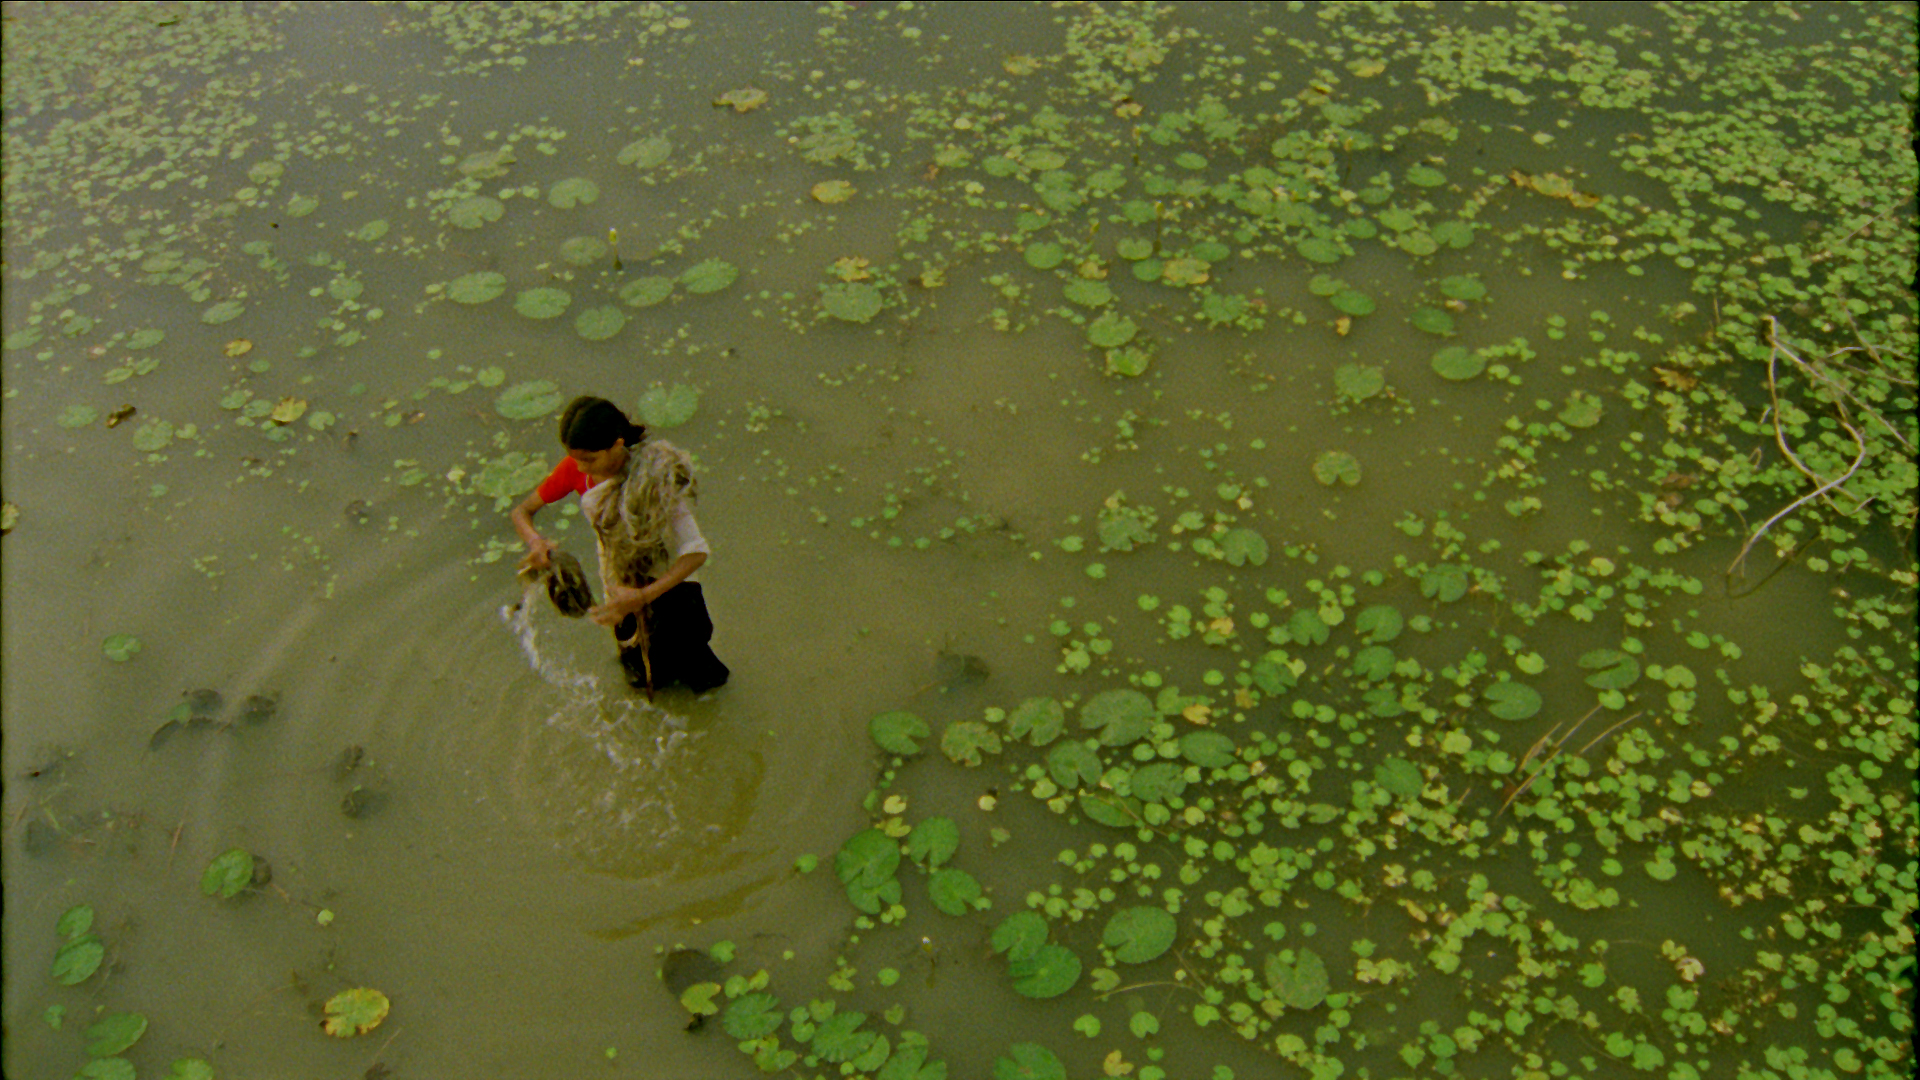 Vanaja in Pond.jpg